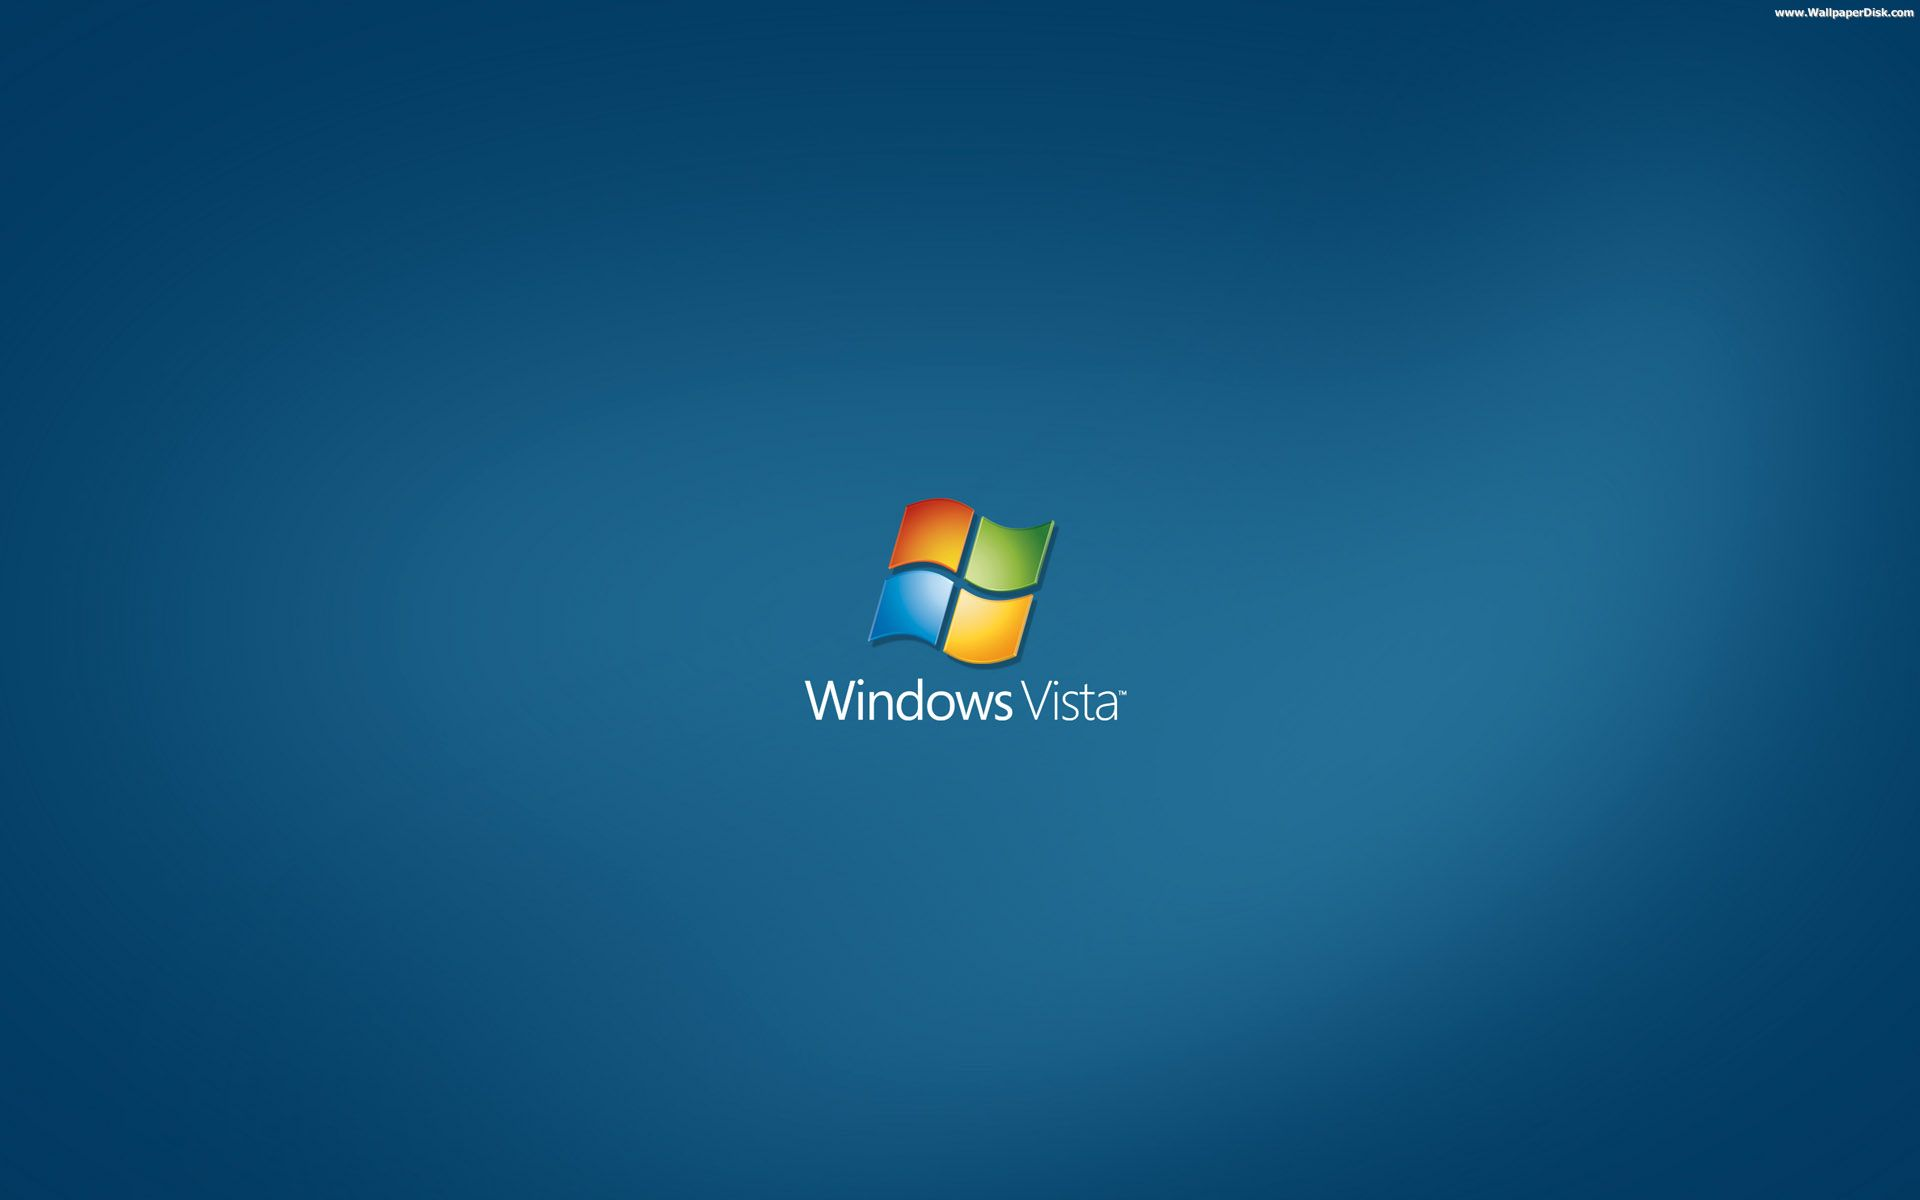 system operating windows vista background wallpaper software 1920x1200